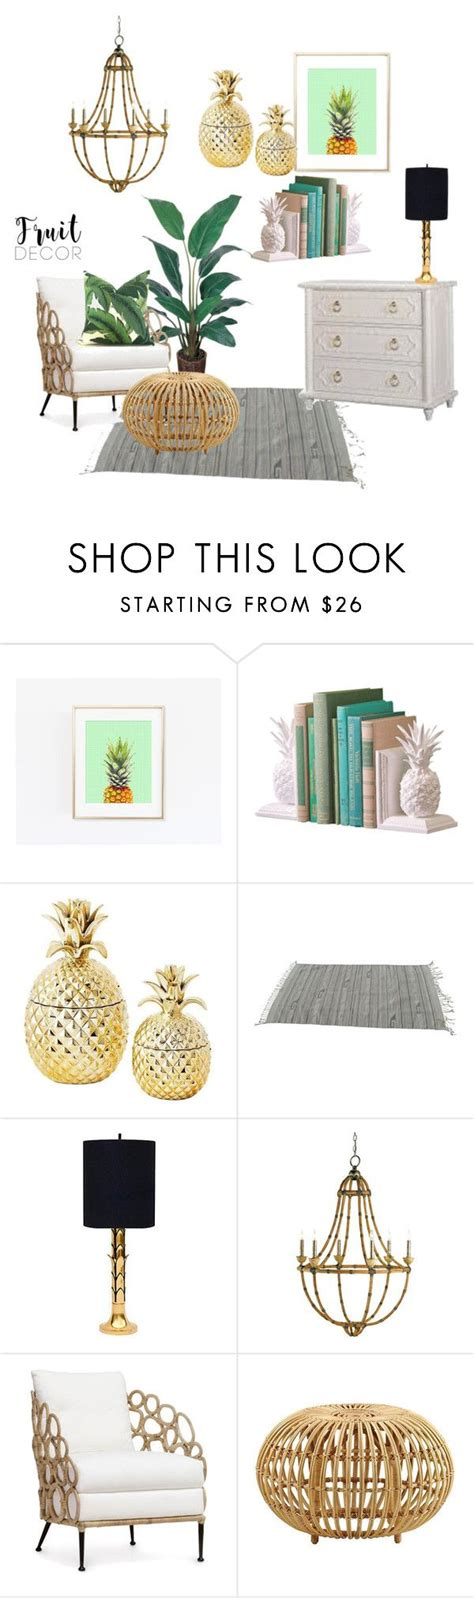 inspirations home decor raleigh 1000 ideas about pineapple design on pinterest pineapple images pineapple print and abstract